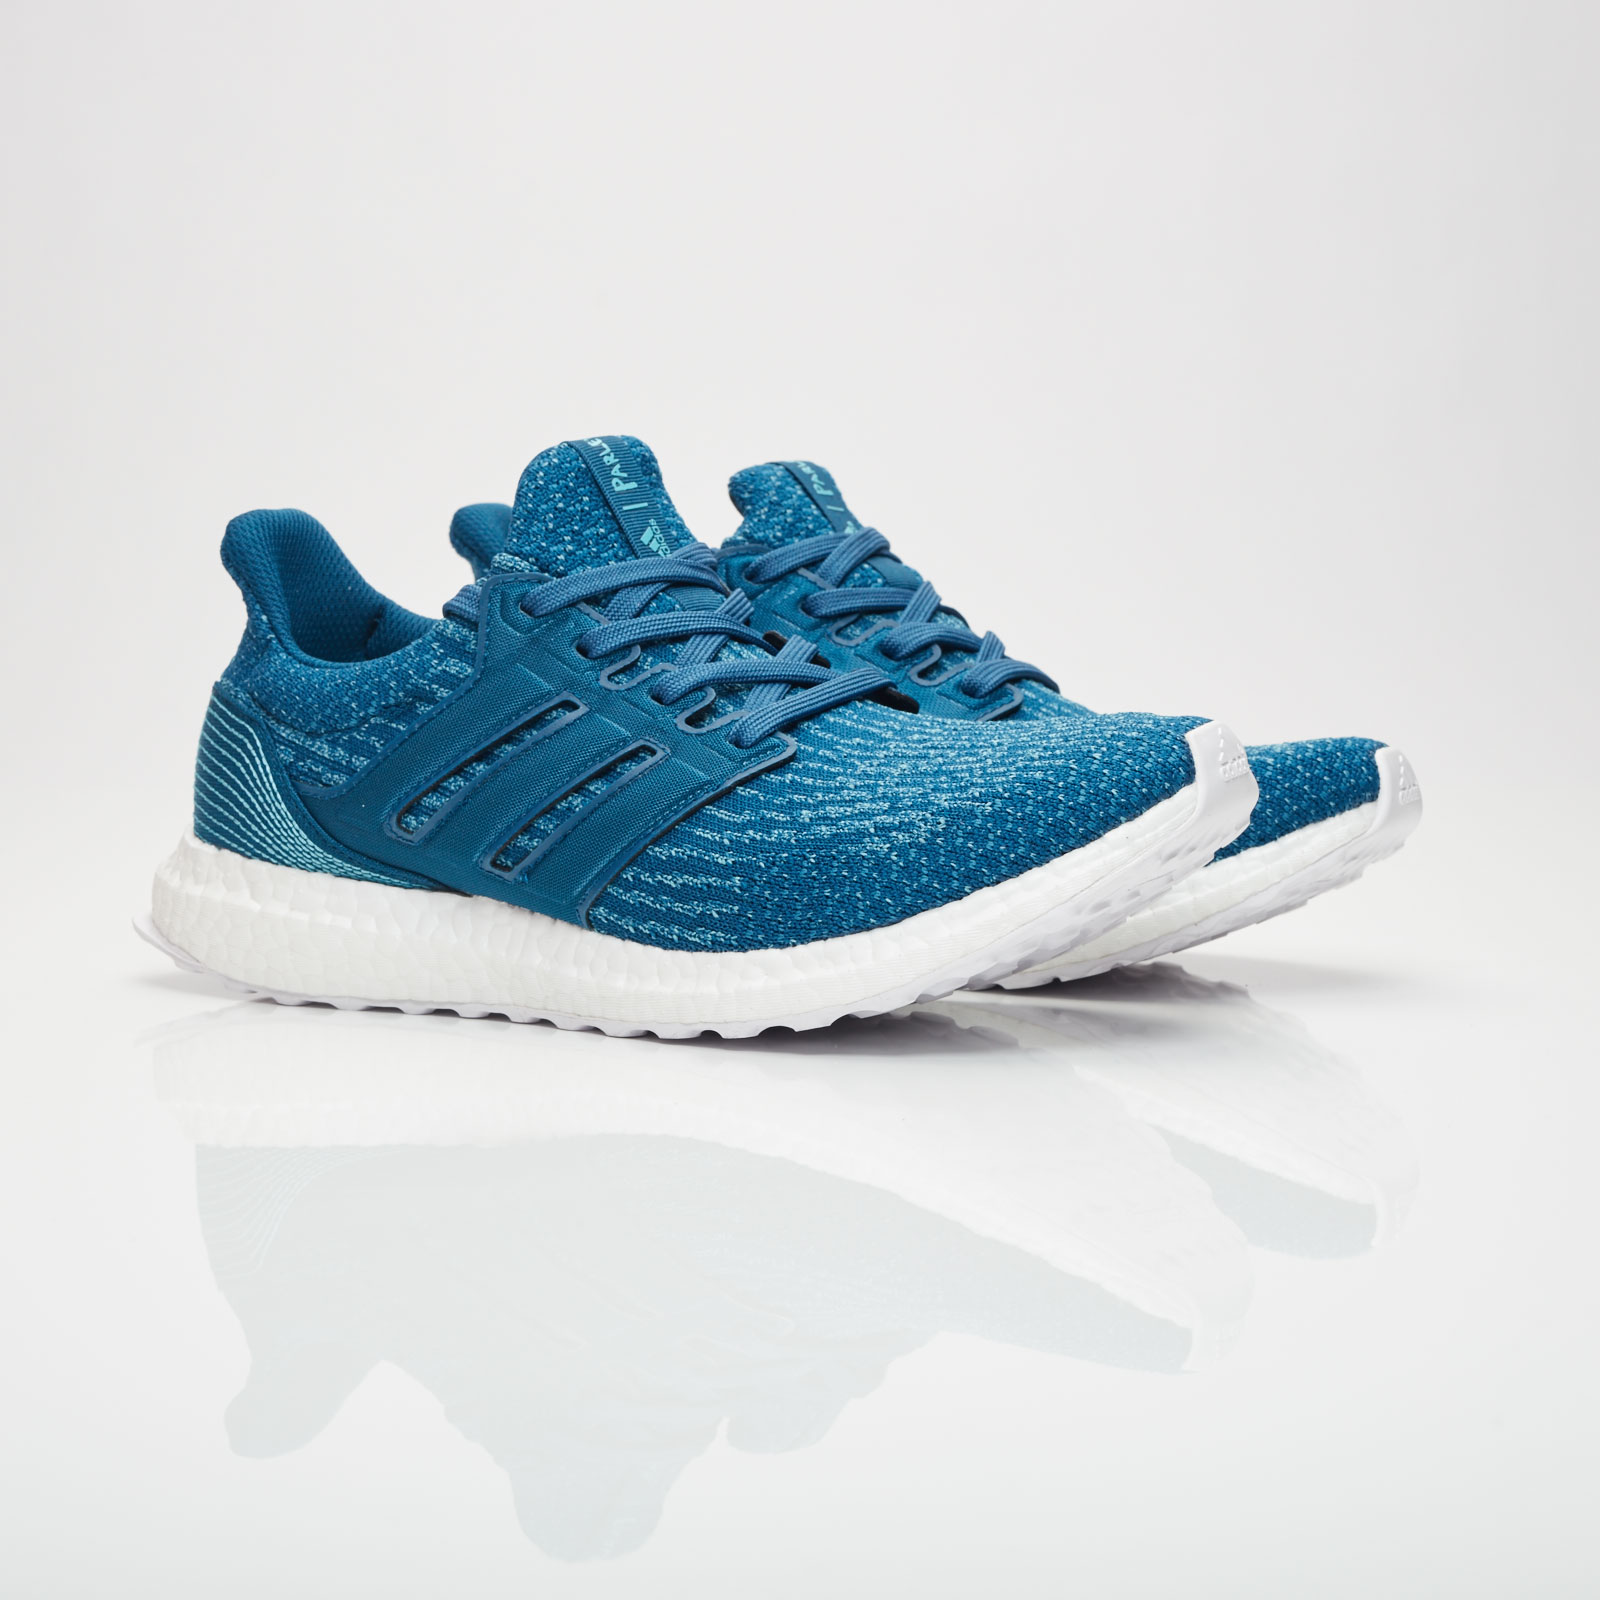 new product 82f4e 025d3 adidas Ultraboost Parley - Bb4762 - Sneakersnstuff ...